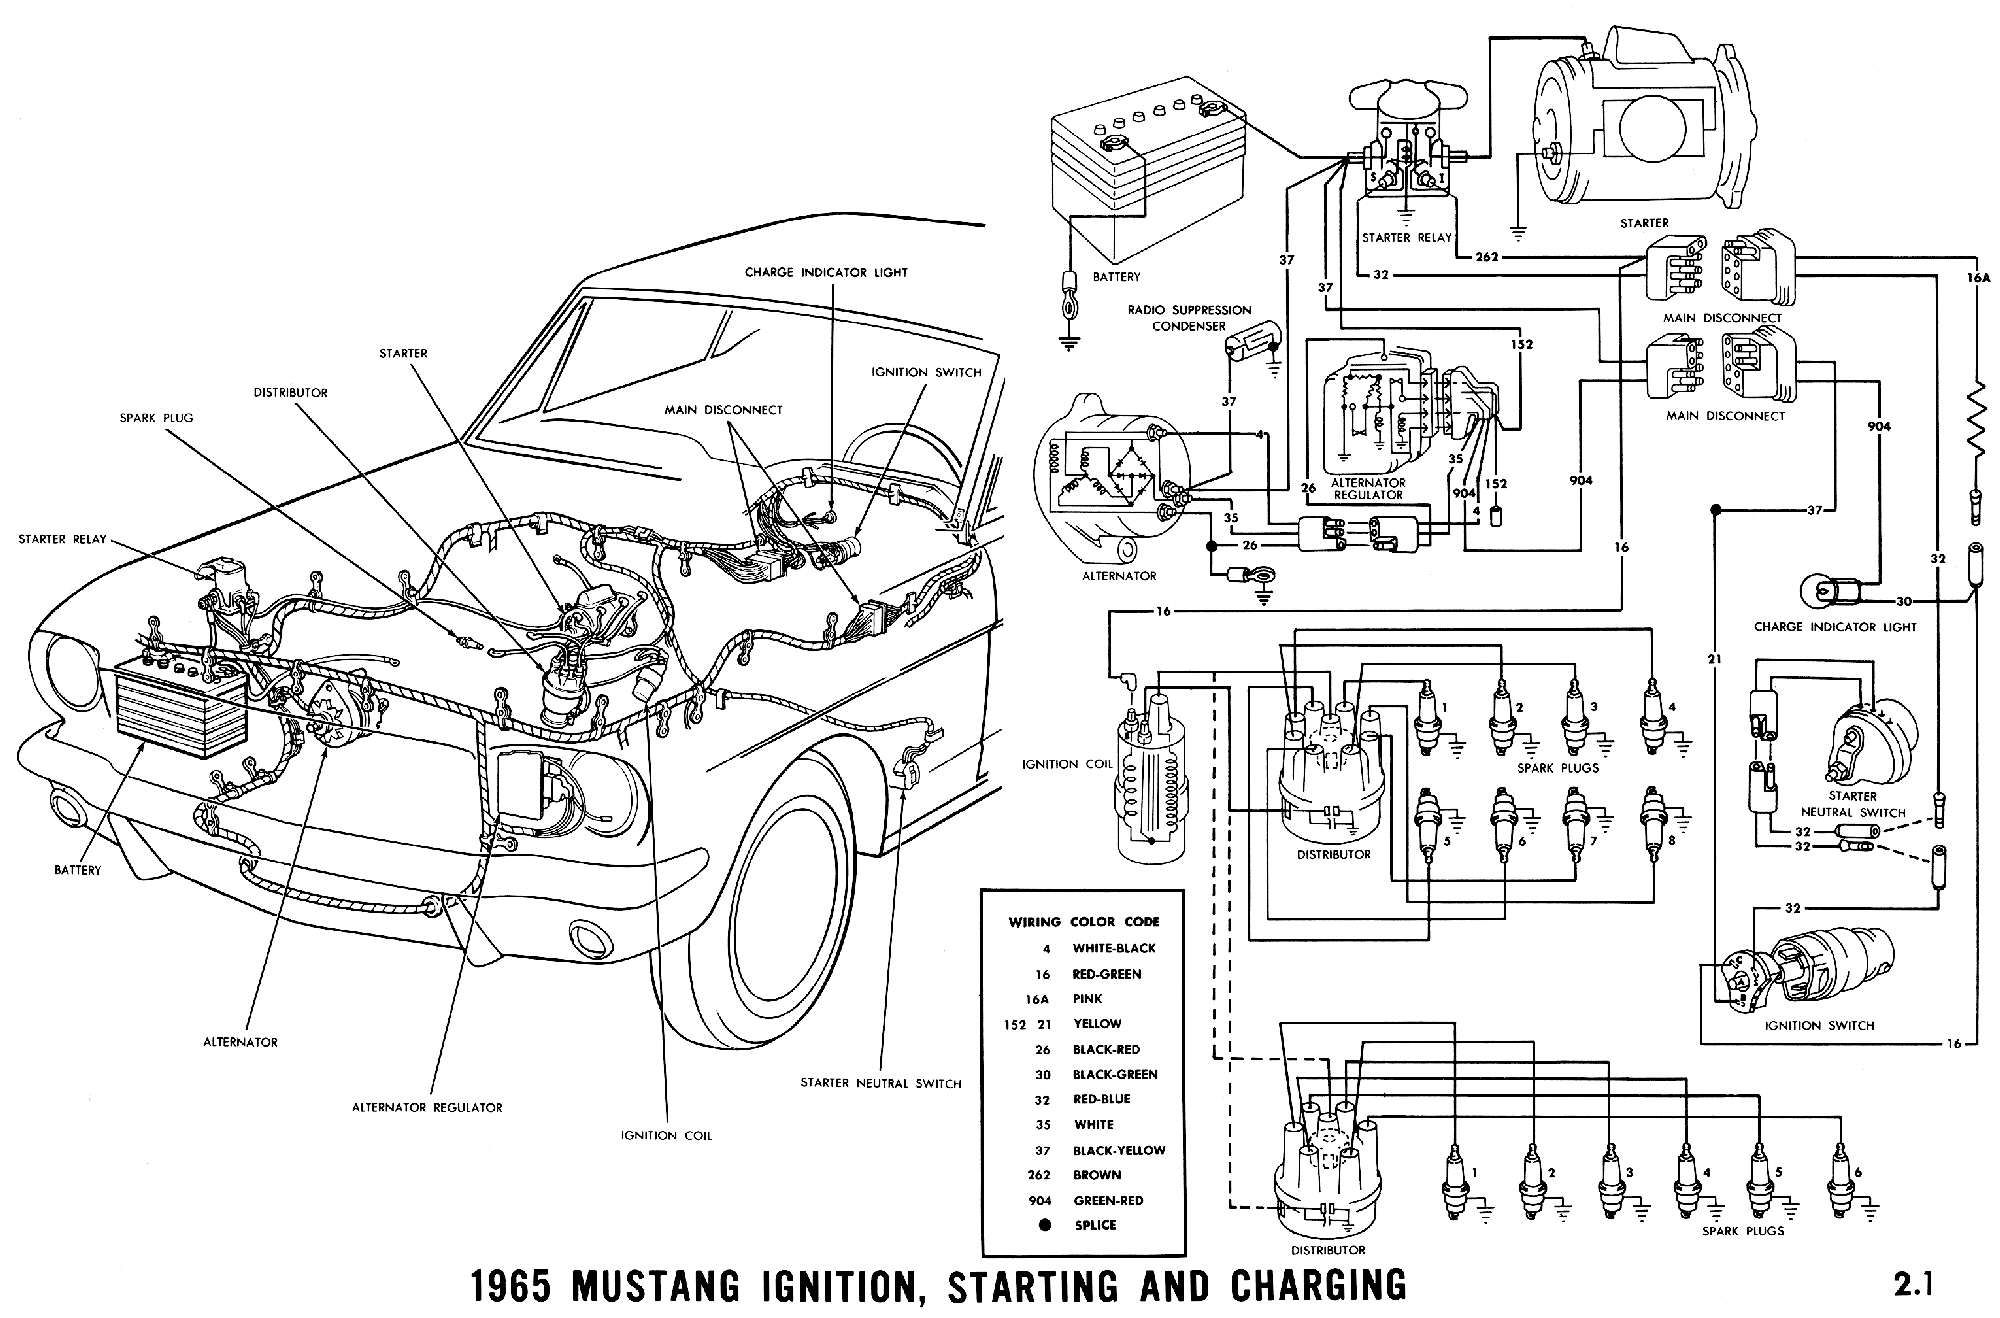 hight resolution of 1967 mustang wiring harness wiring diagram operations 1967 mustang wiring harness diagram 1967 mustang wiring harness